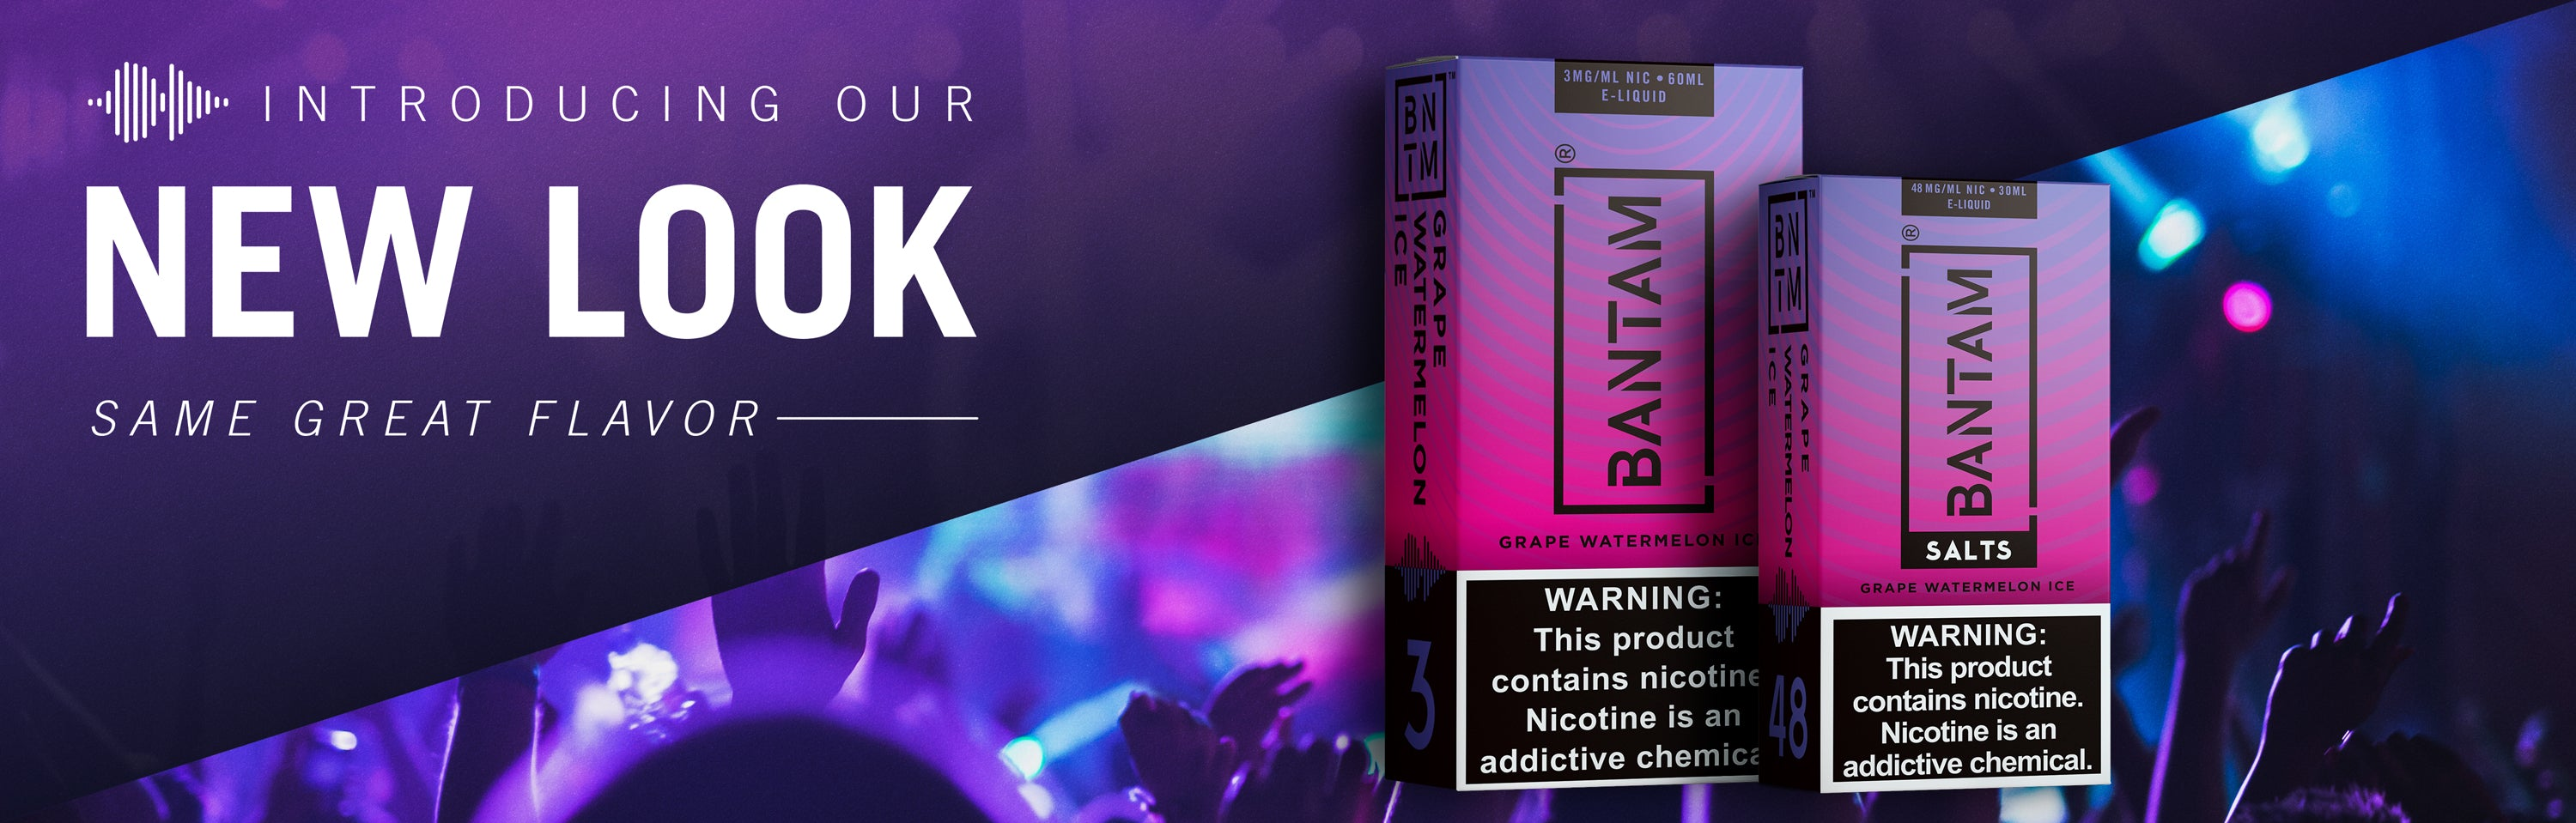 Bantam's new e liquid look, same great e juice and nic salt flavors. New look vape banner.